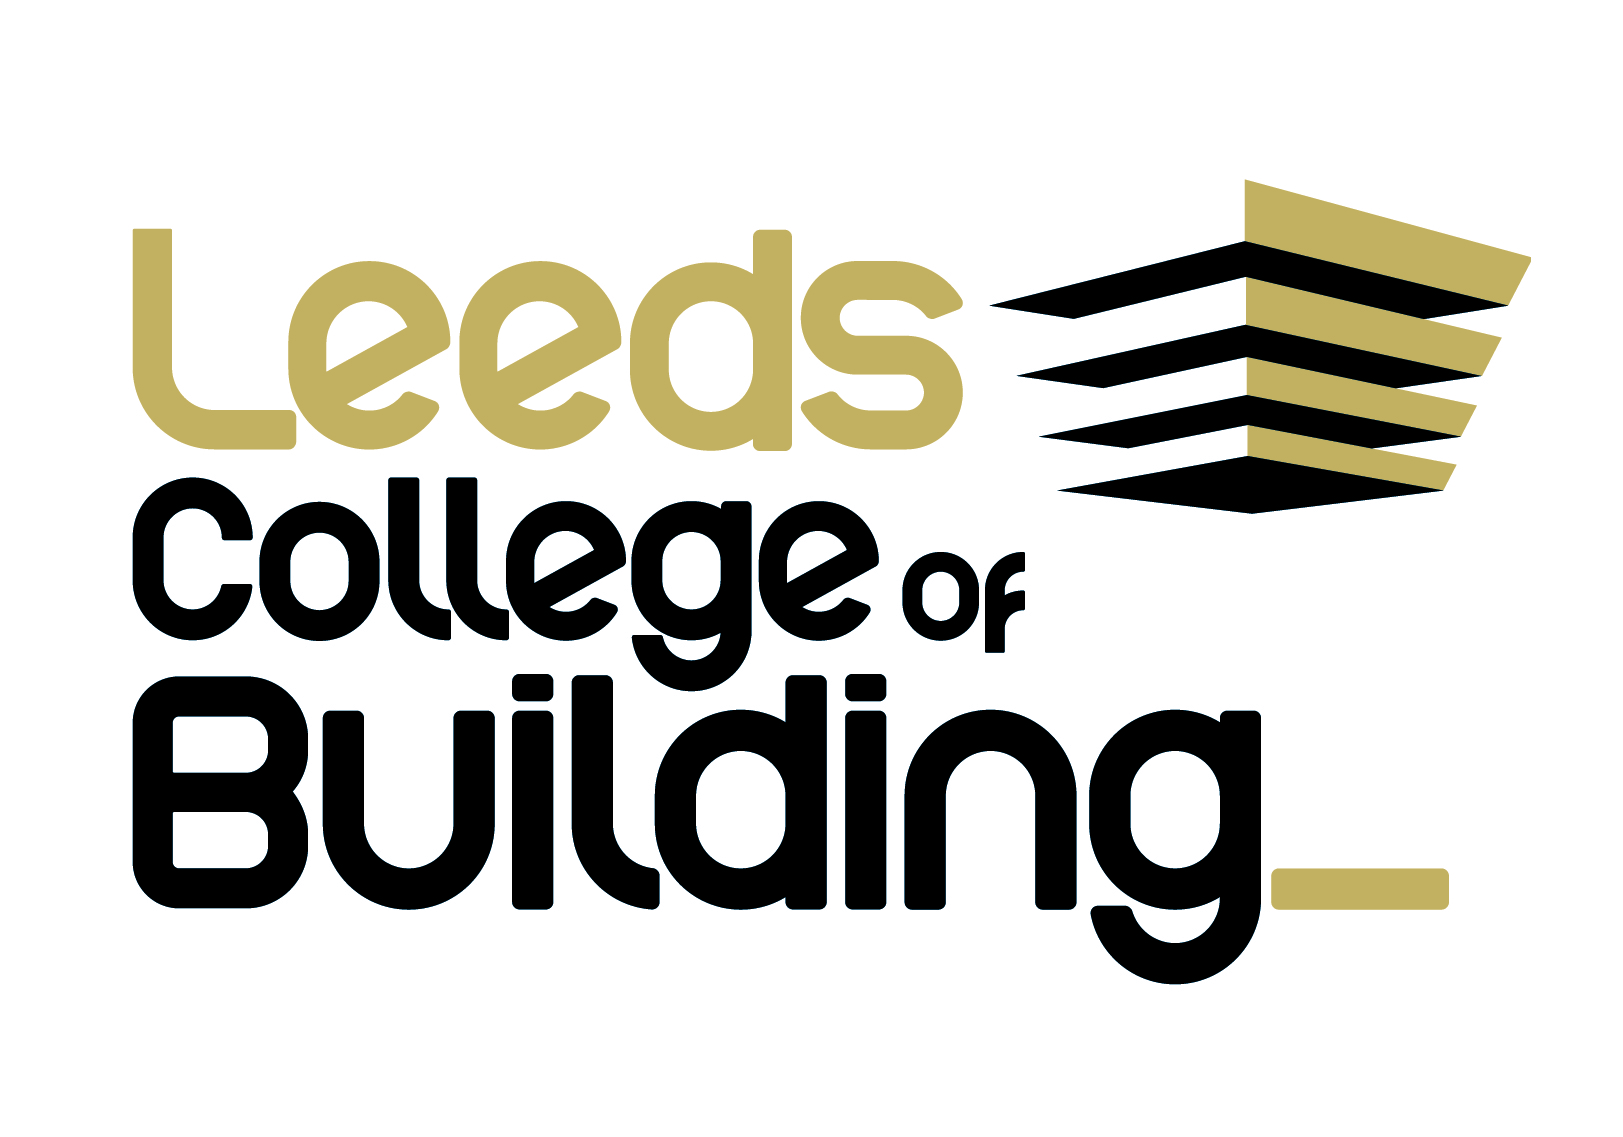 Leeds College of Building